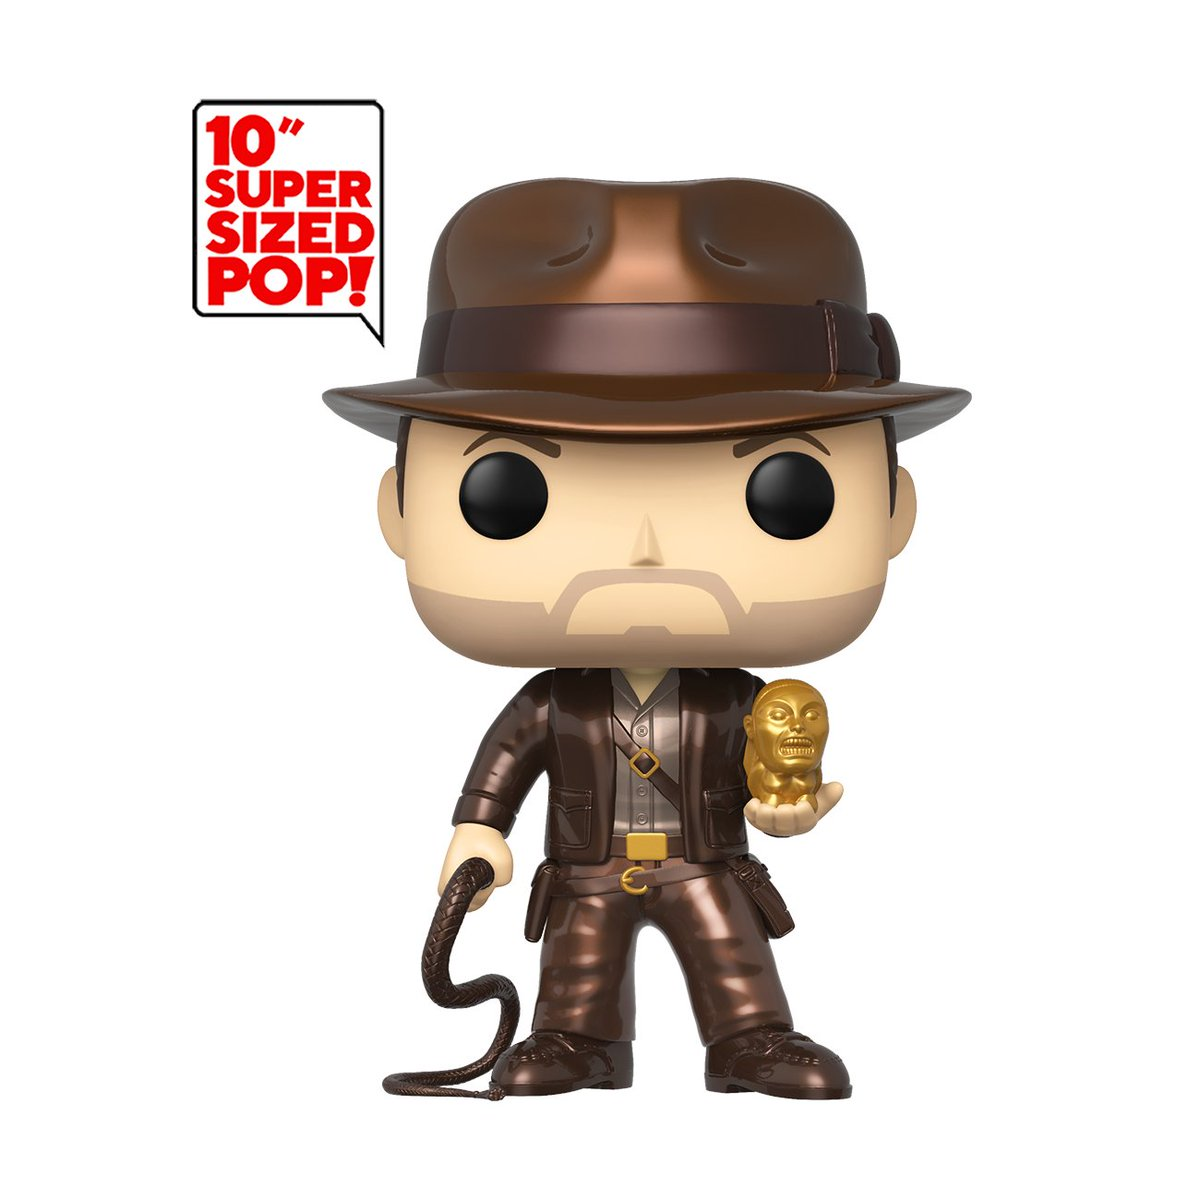 "RT & follow @OriginalFunko for a chance to WIN a 2020 #ECCC exclusive 10"" Indiana Jones Pop!  #Funko #FunkoPop #Giveaway #Exclusive #ECCC #2020ECCC #FunkoECCC #IndianaJones #disney"